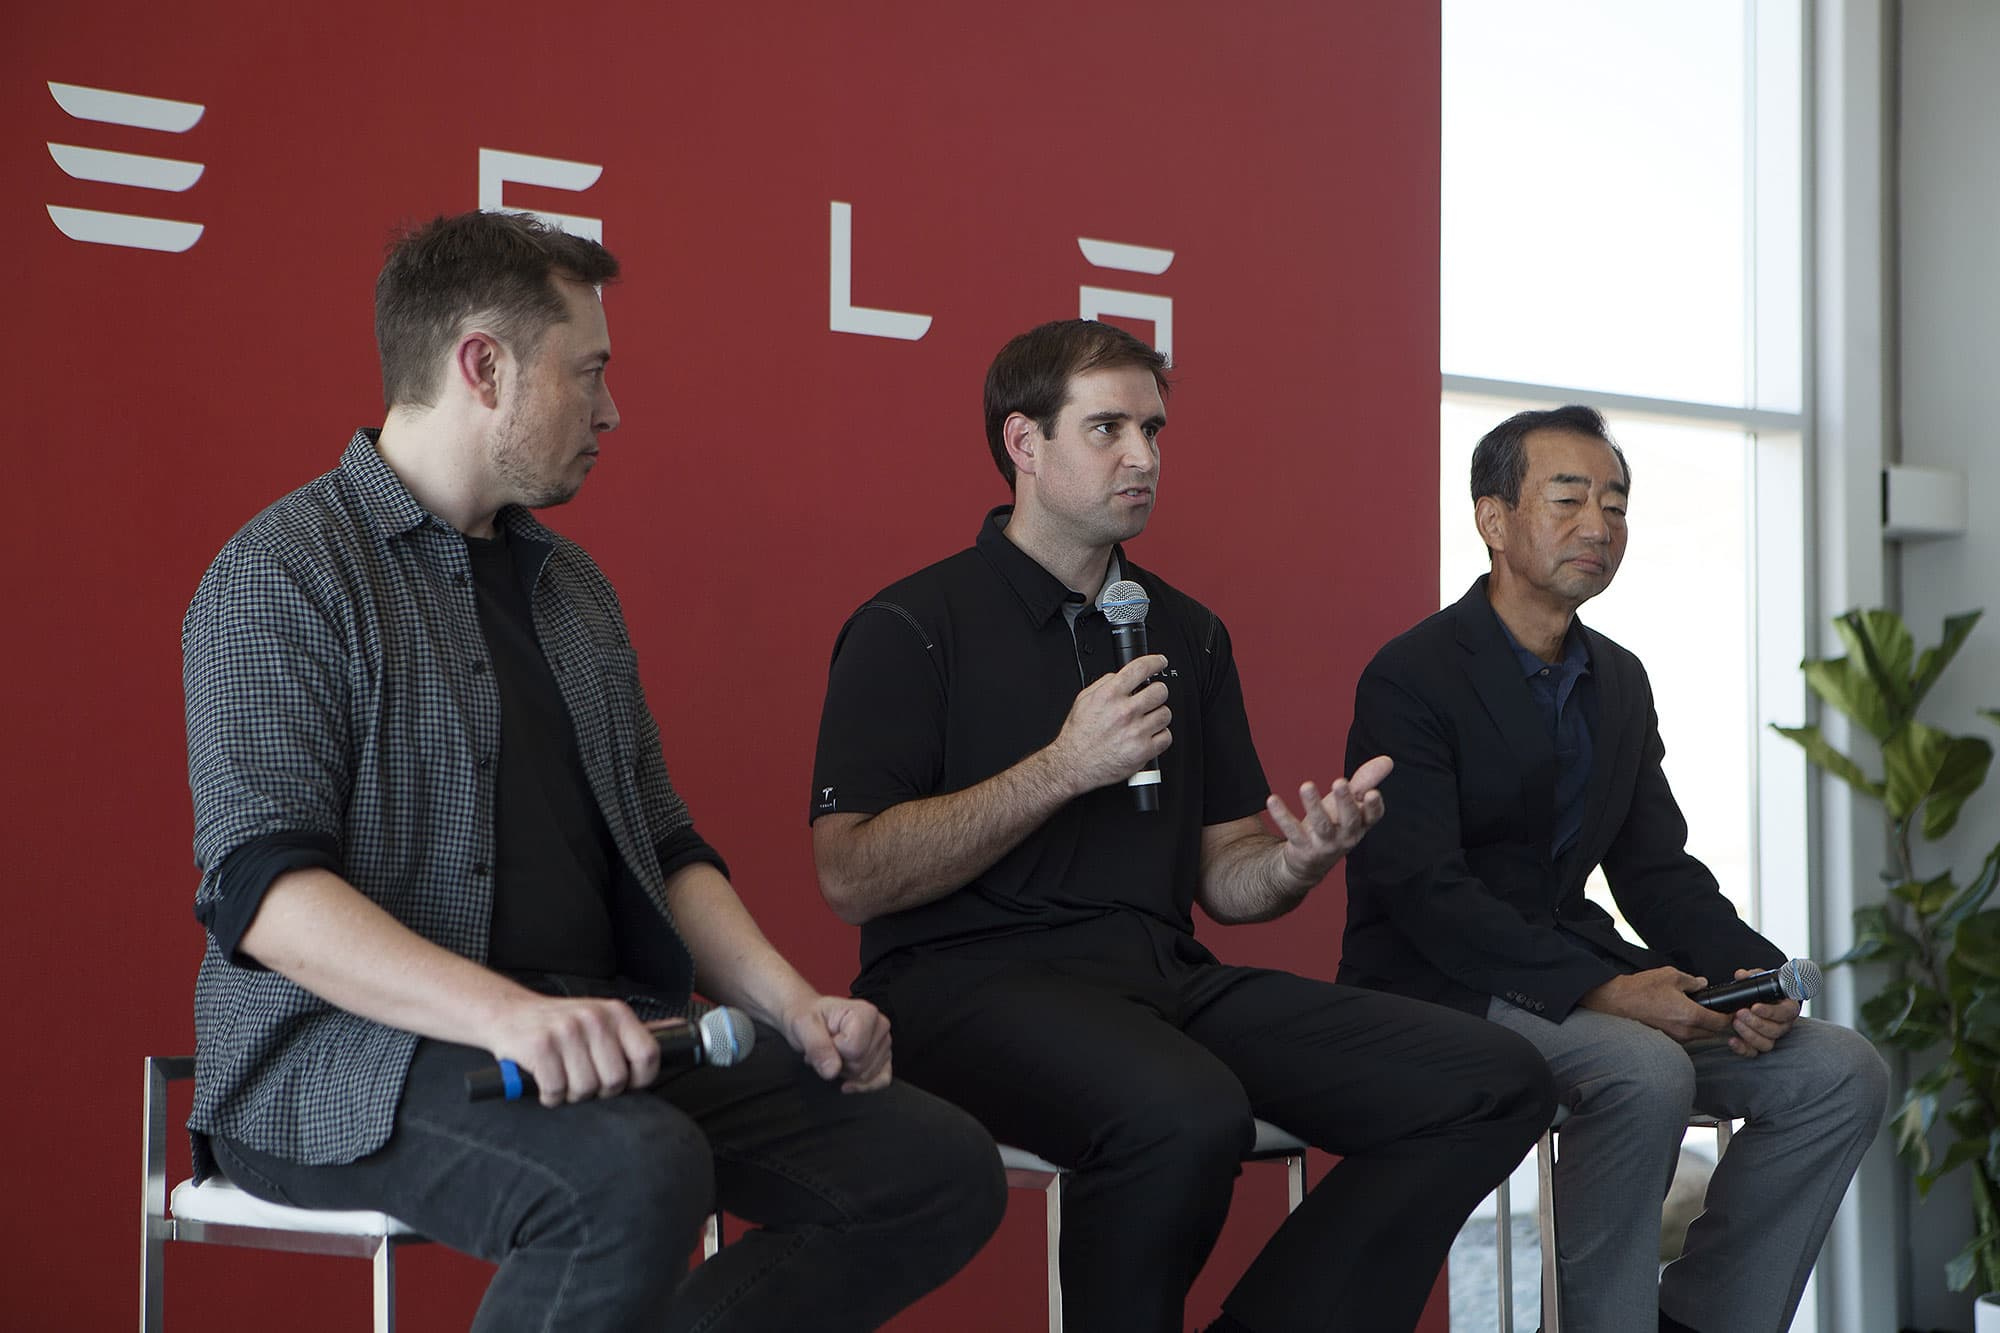 Tesla CTO and co-founder JB Straubel is moving to advisory role as brain drain continues